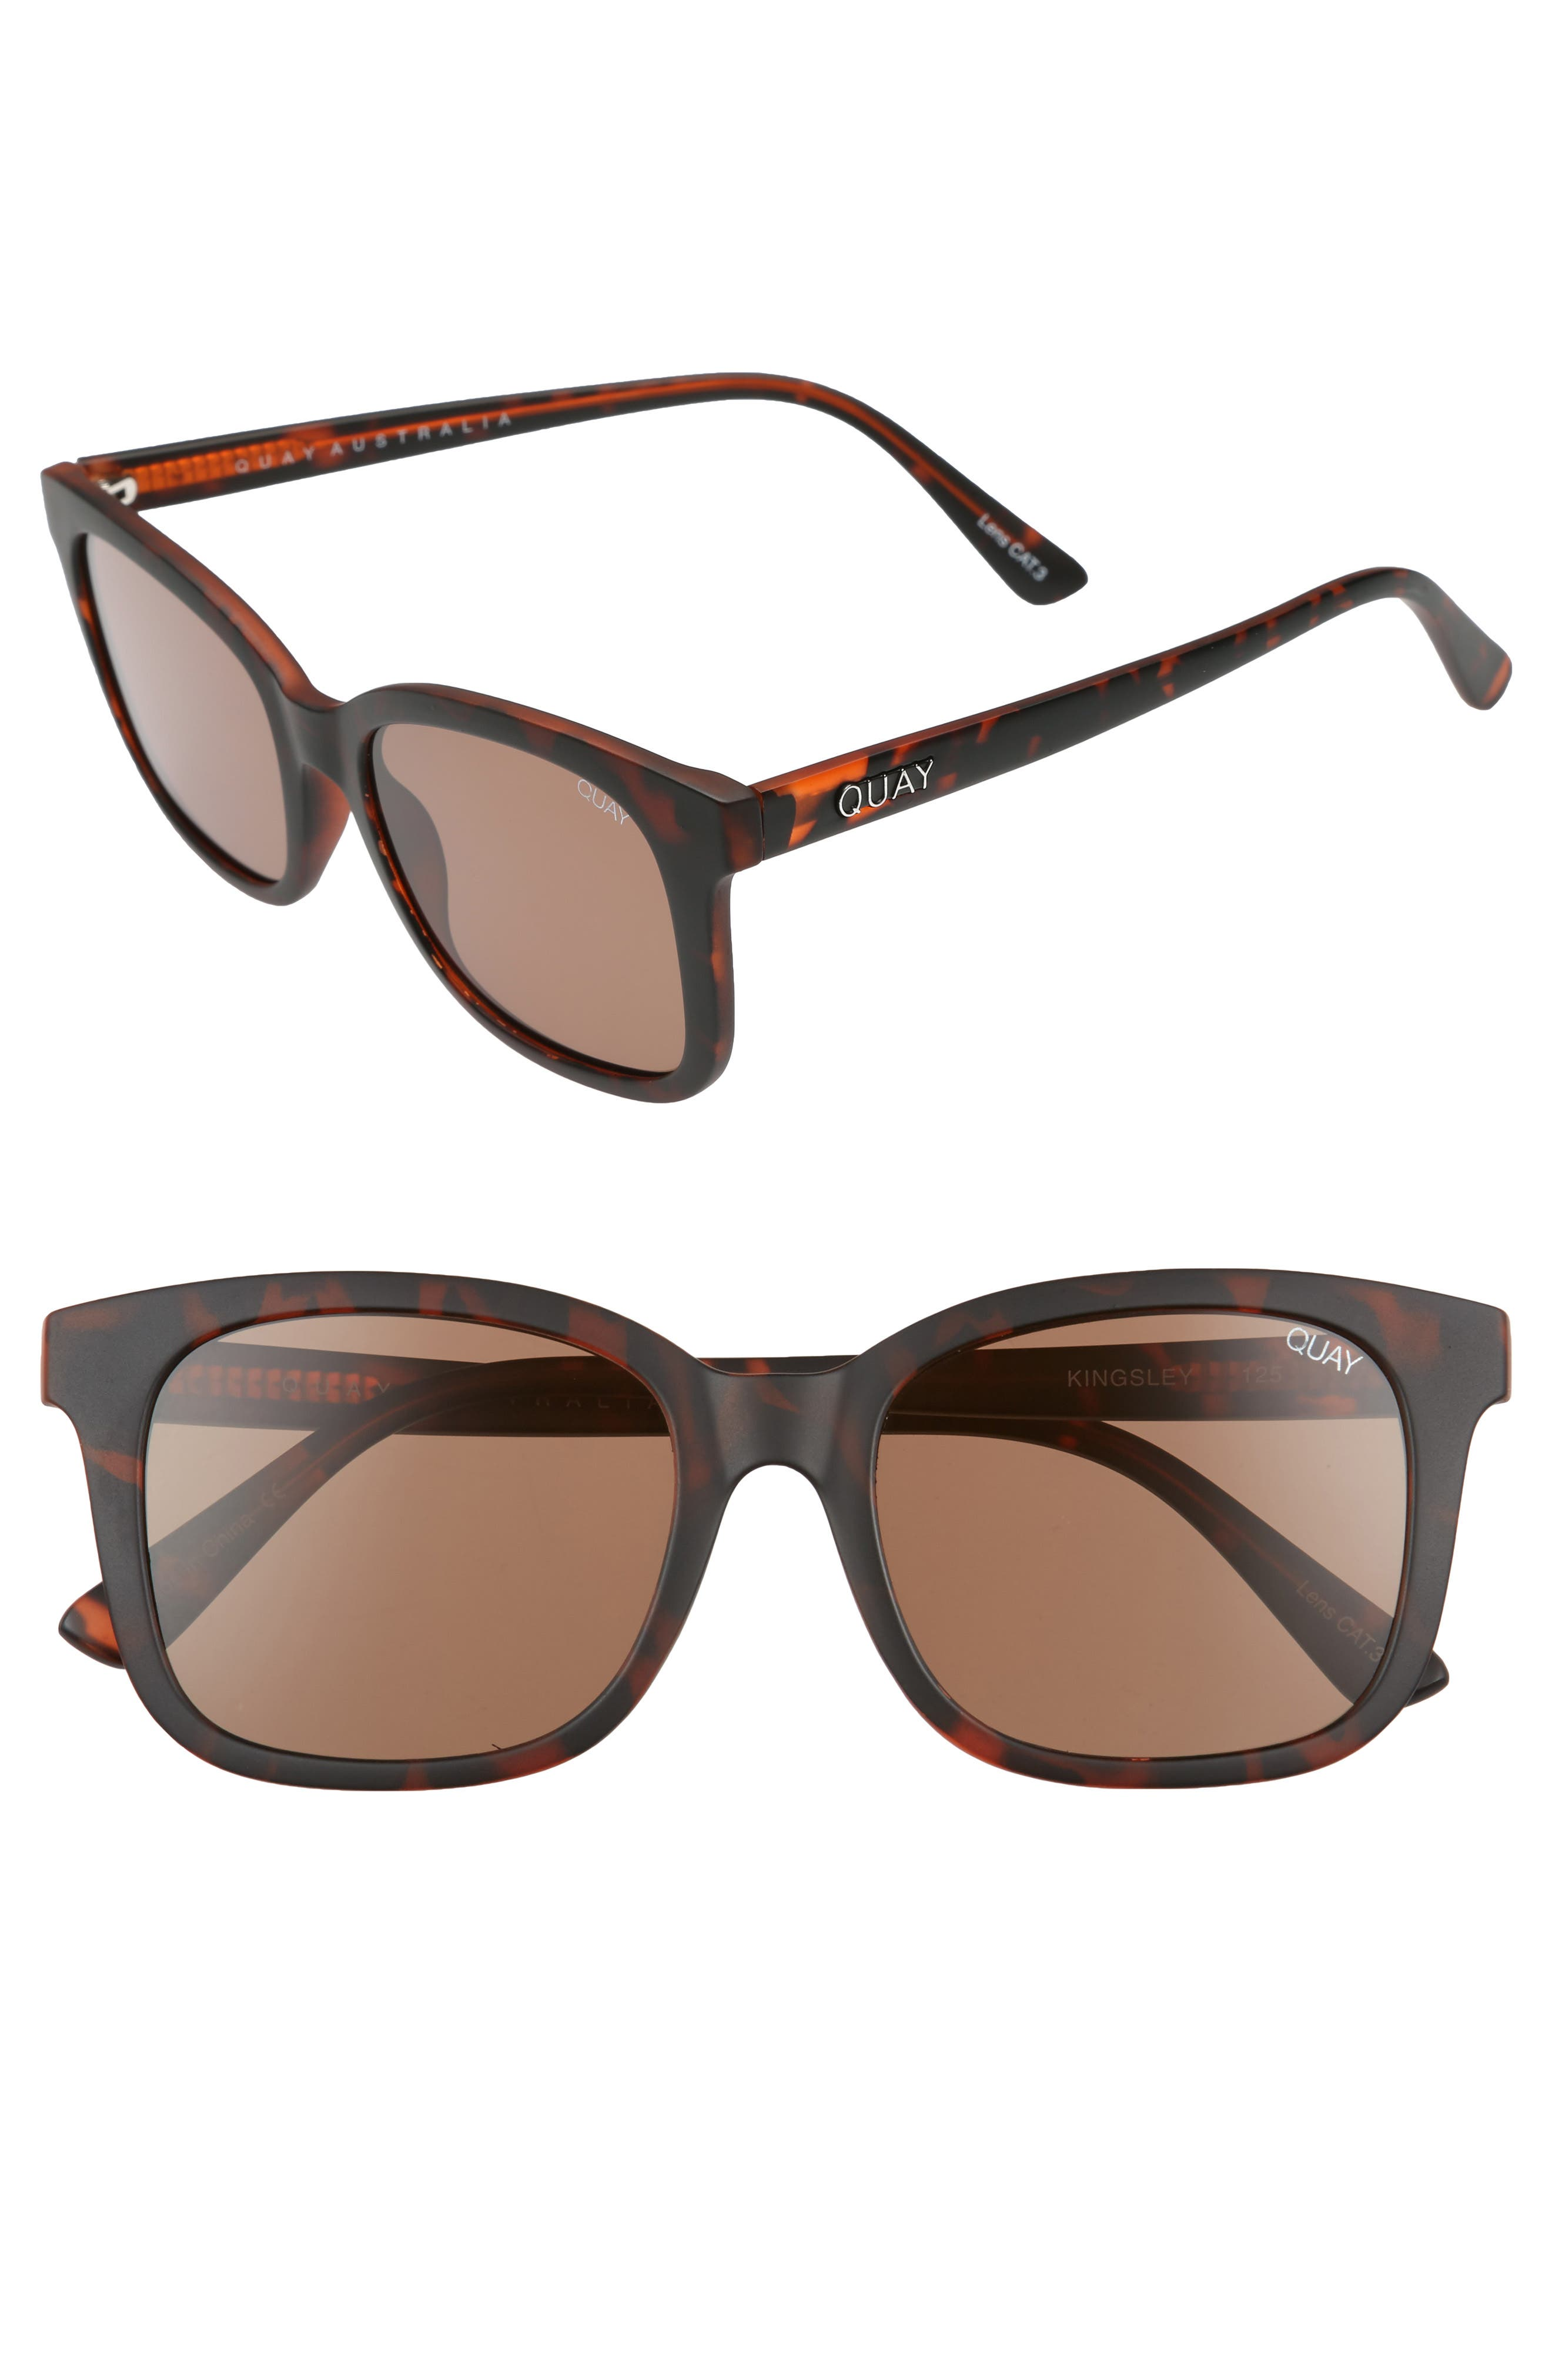 Quay Australia Kingsley 52mm Sunglasses